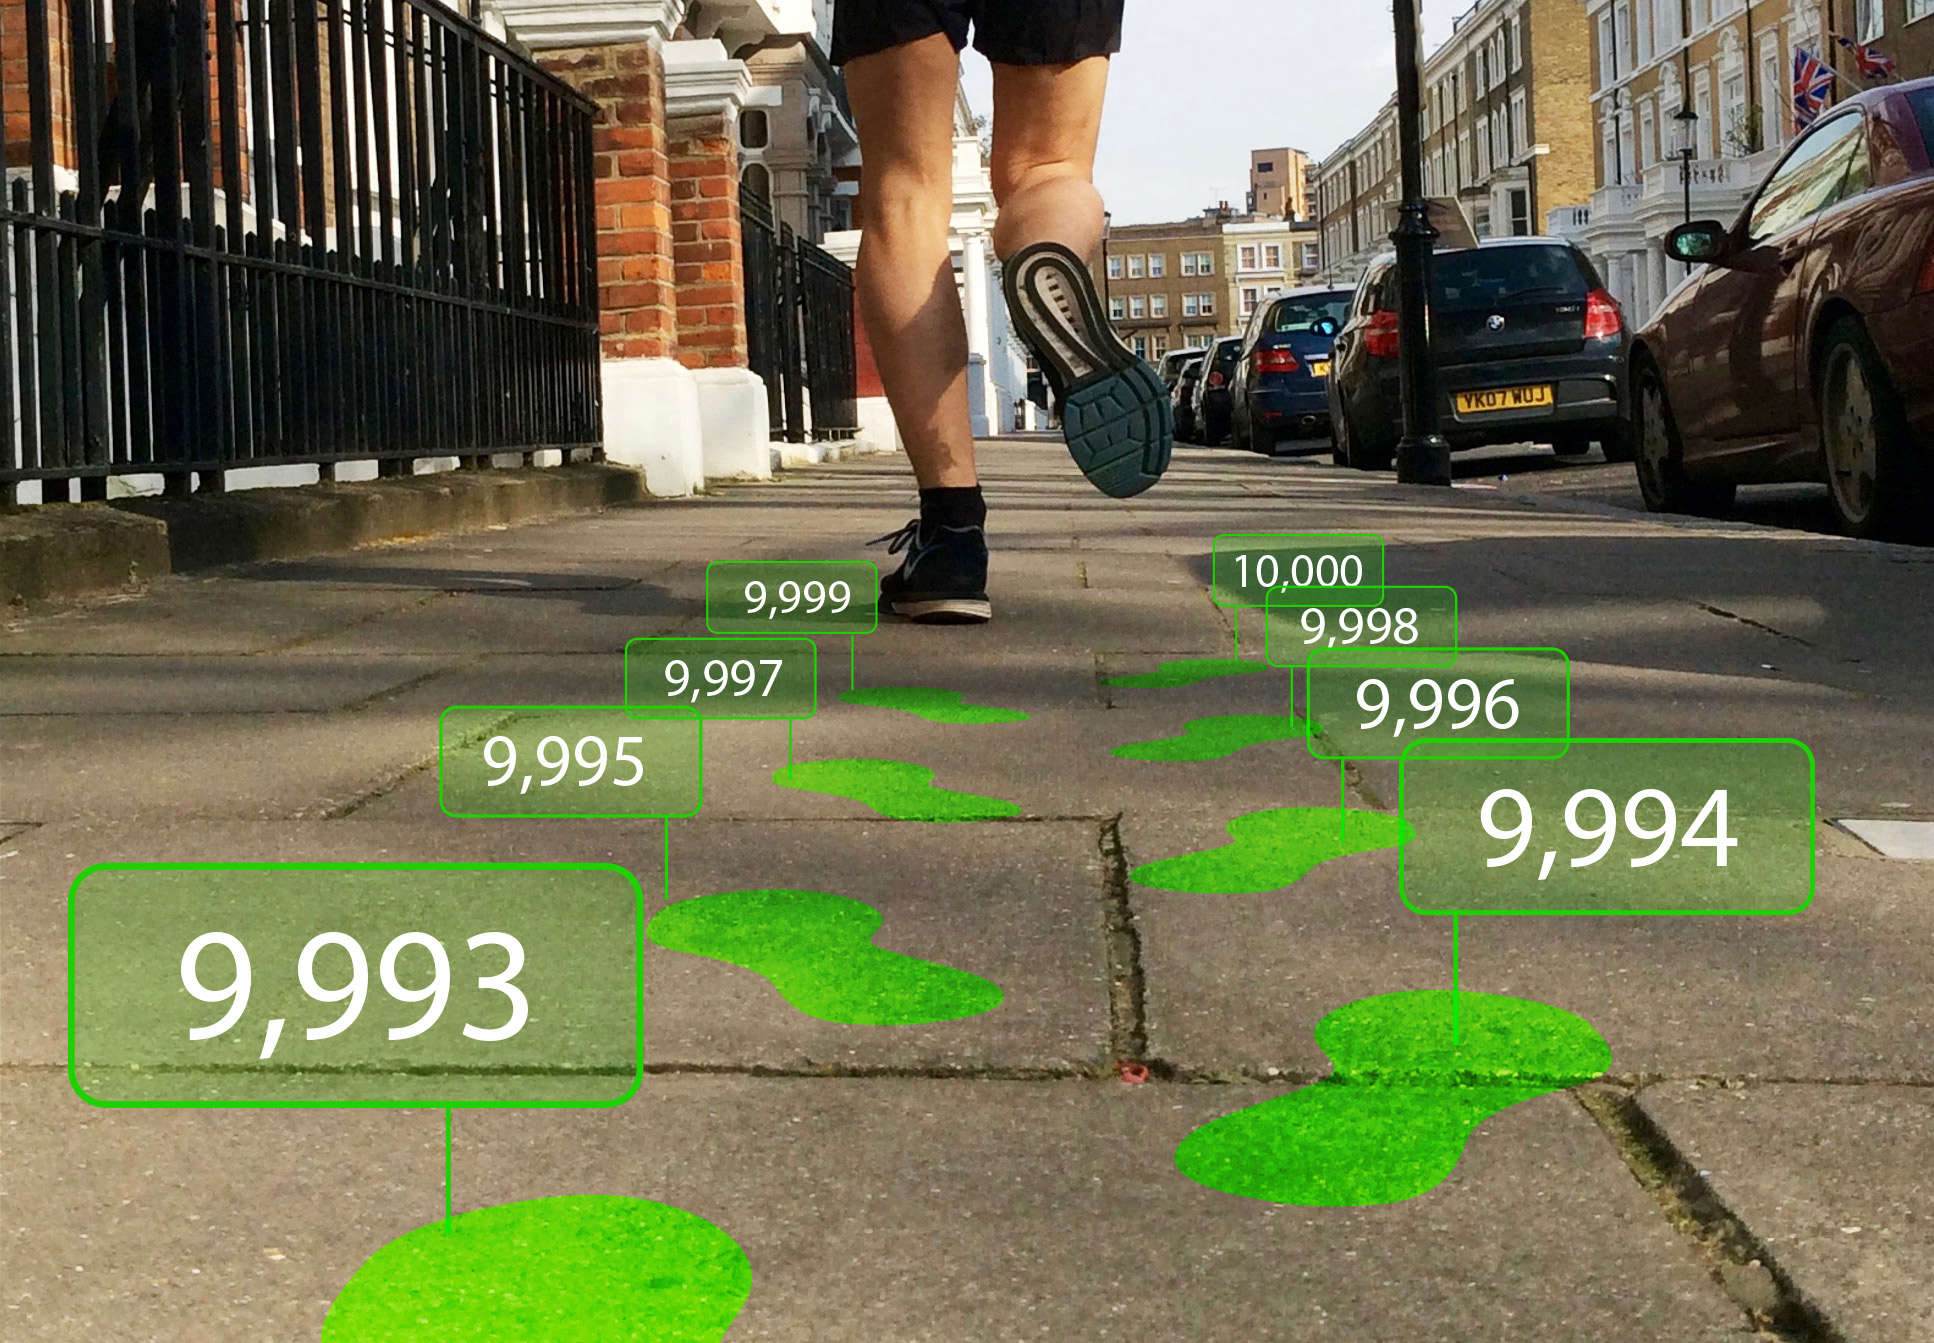 Where will Fitbit's 10,000 steps a day lead you?